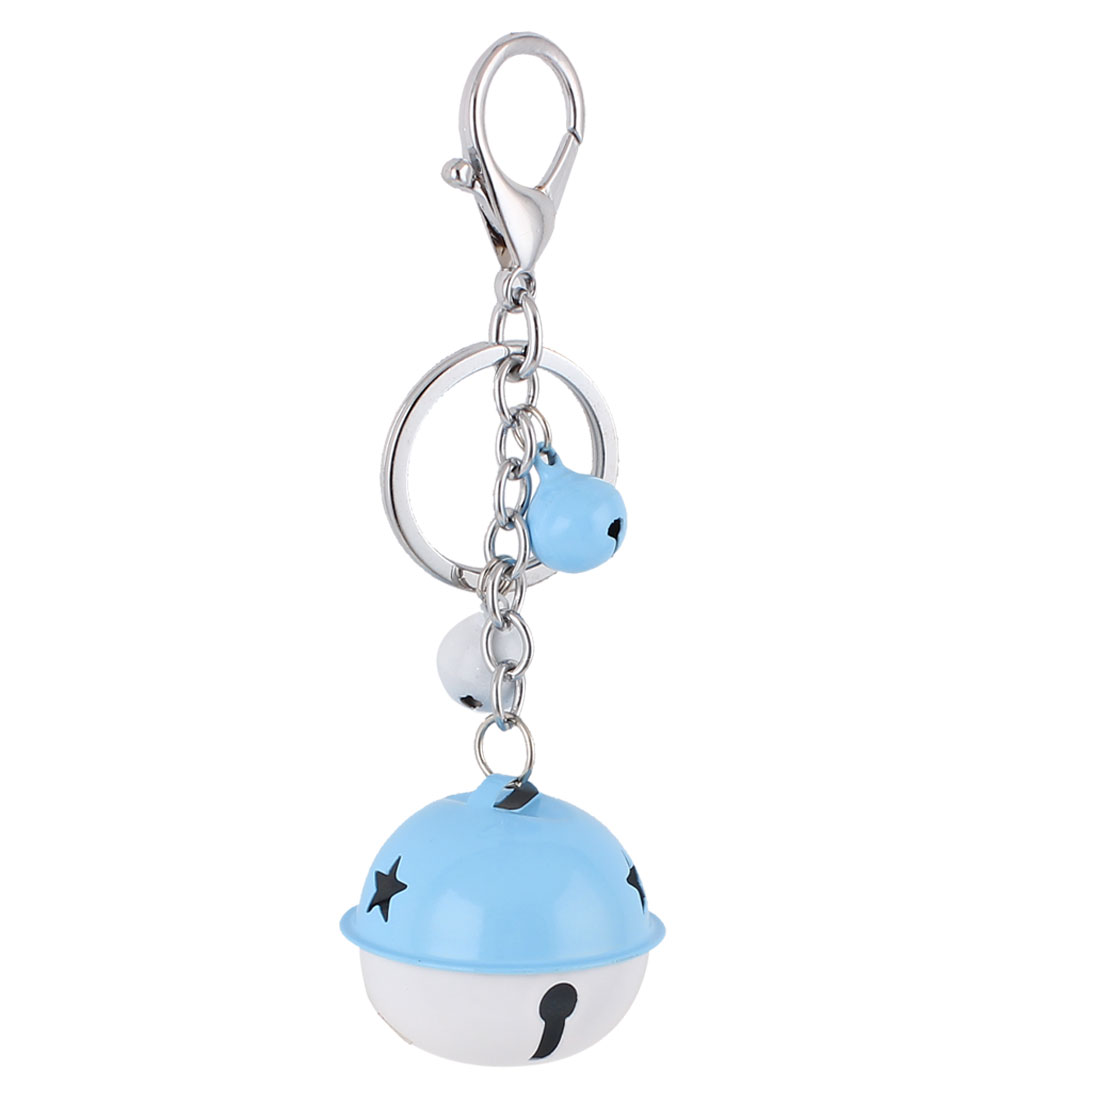 Metal Bells Pendant Lobster Clasp Split Ring Keyring Keychain Key Chain Bag Purse Ornament Blue White